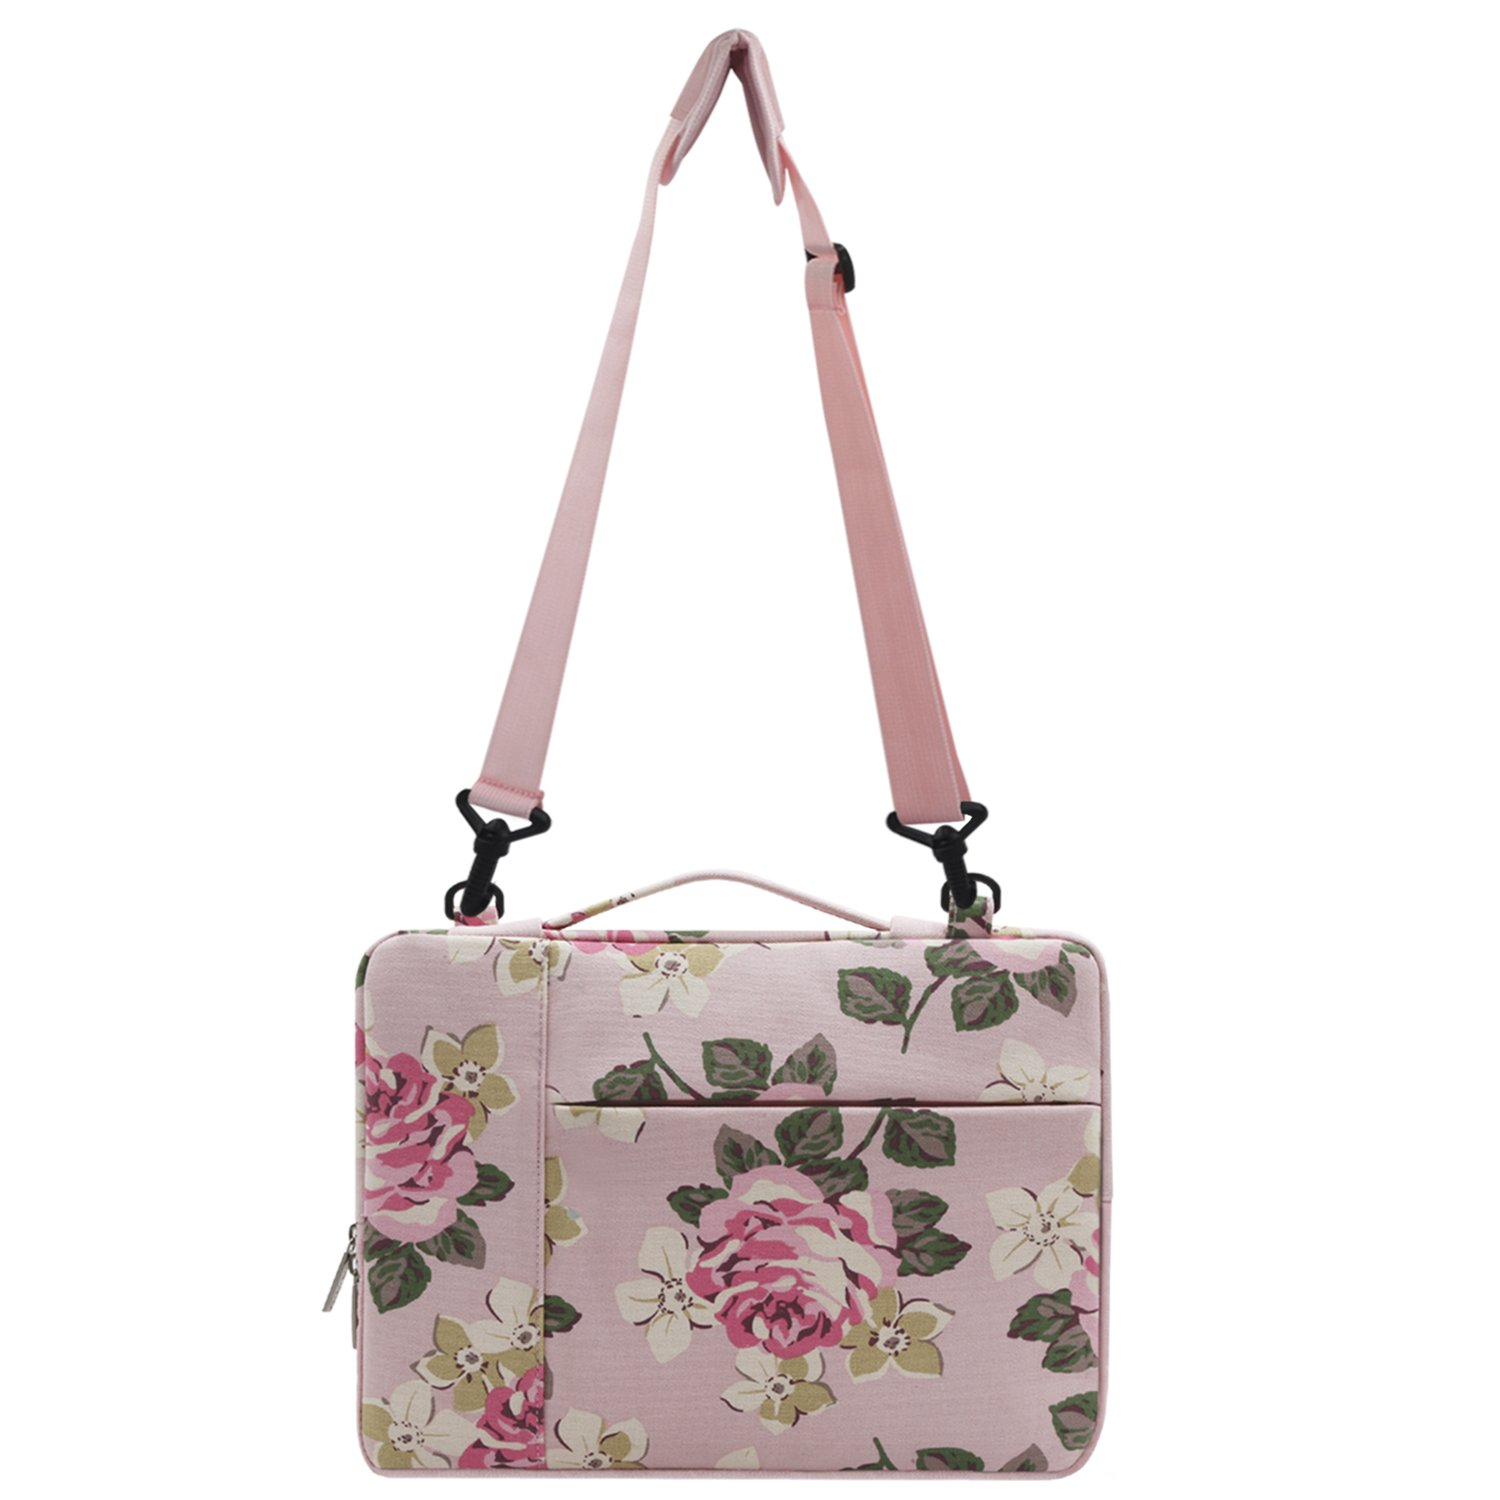 Mosiso Rose Multifunctional Shoulder Bag for 11.6-13 inch MacBook Air, 2018/2017/2016 MacBook Pro A1989/A1706/A1708, New Surface Pro 2017, Surface Pro 4/3, Canvas Laptop Messenger Case Sleeve, Dark Blue